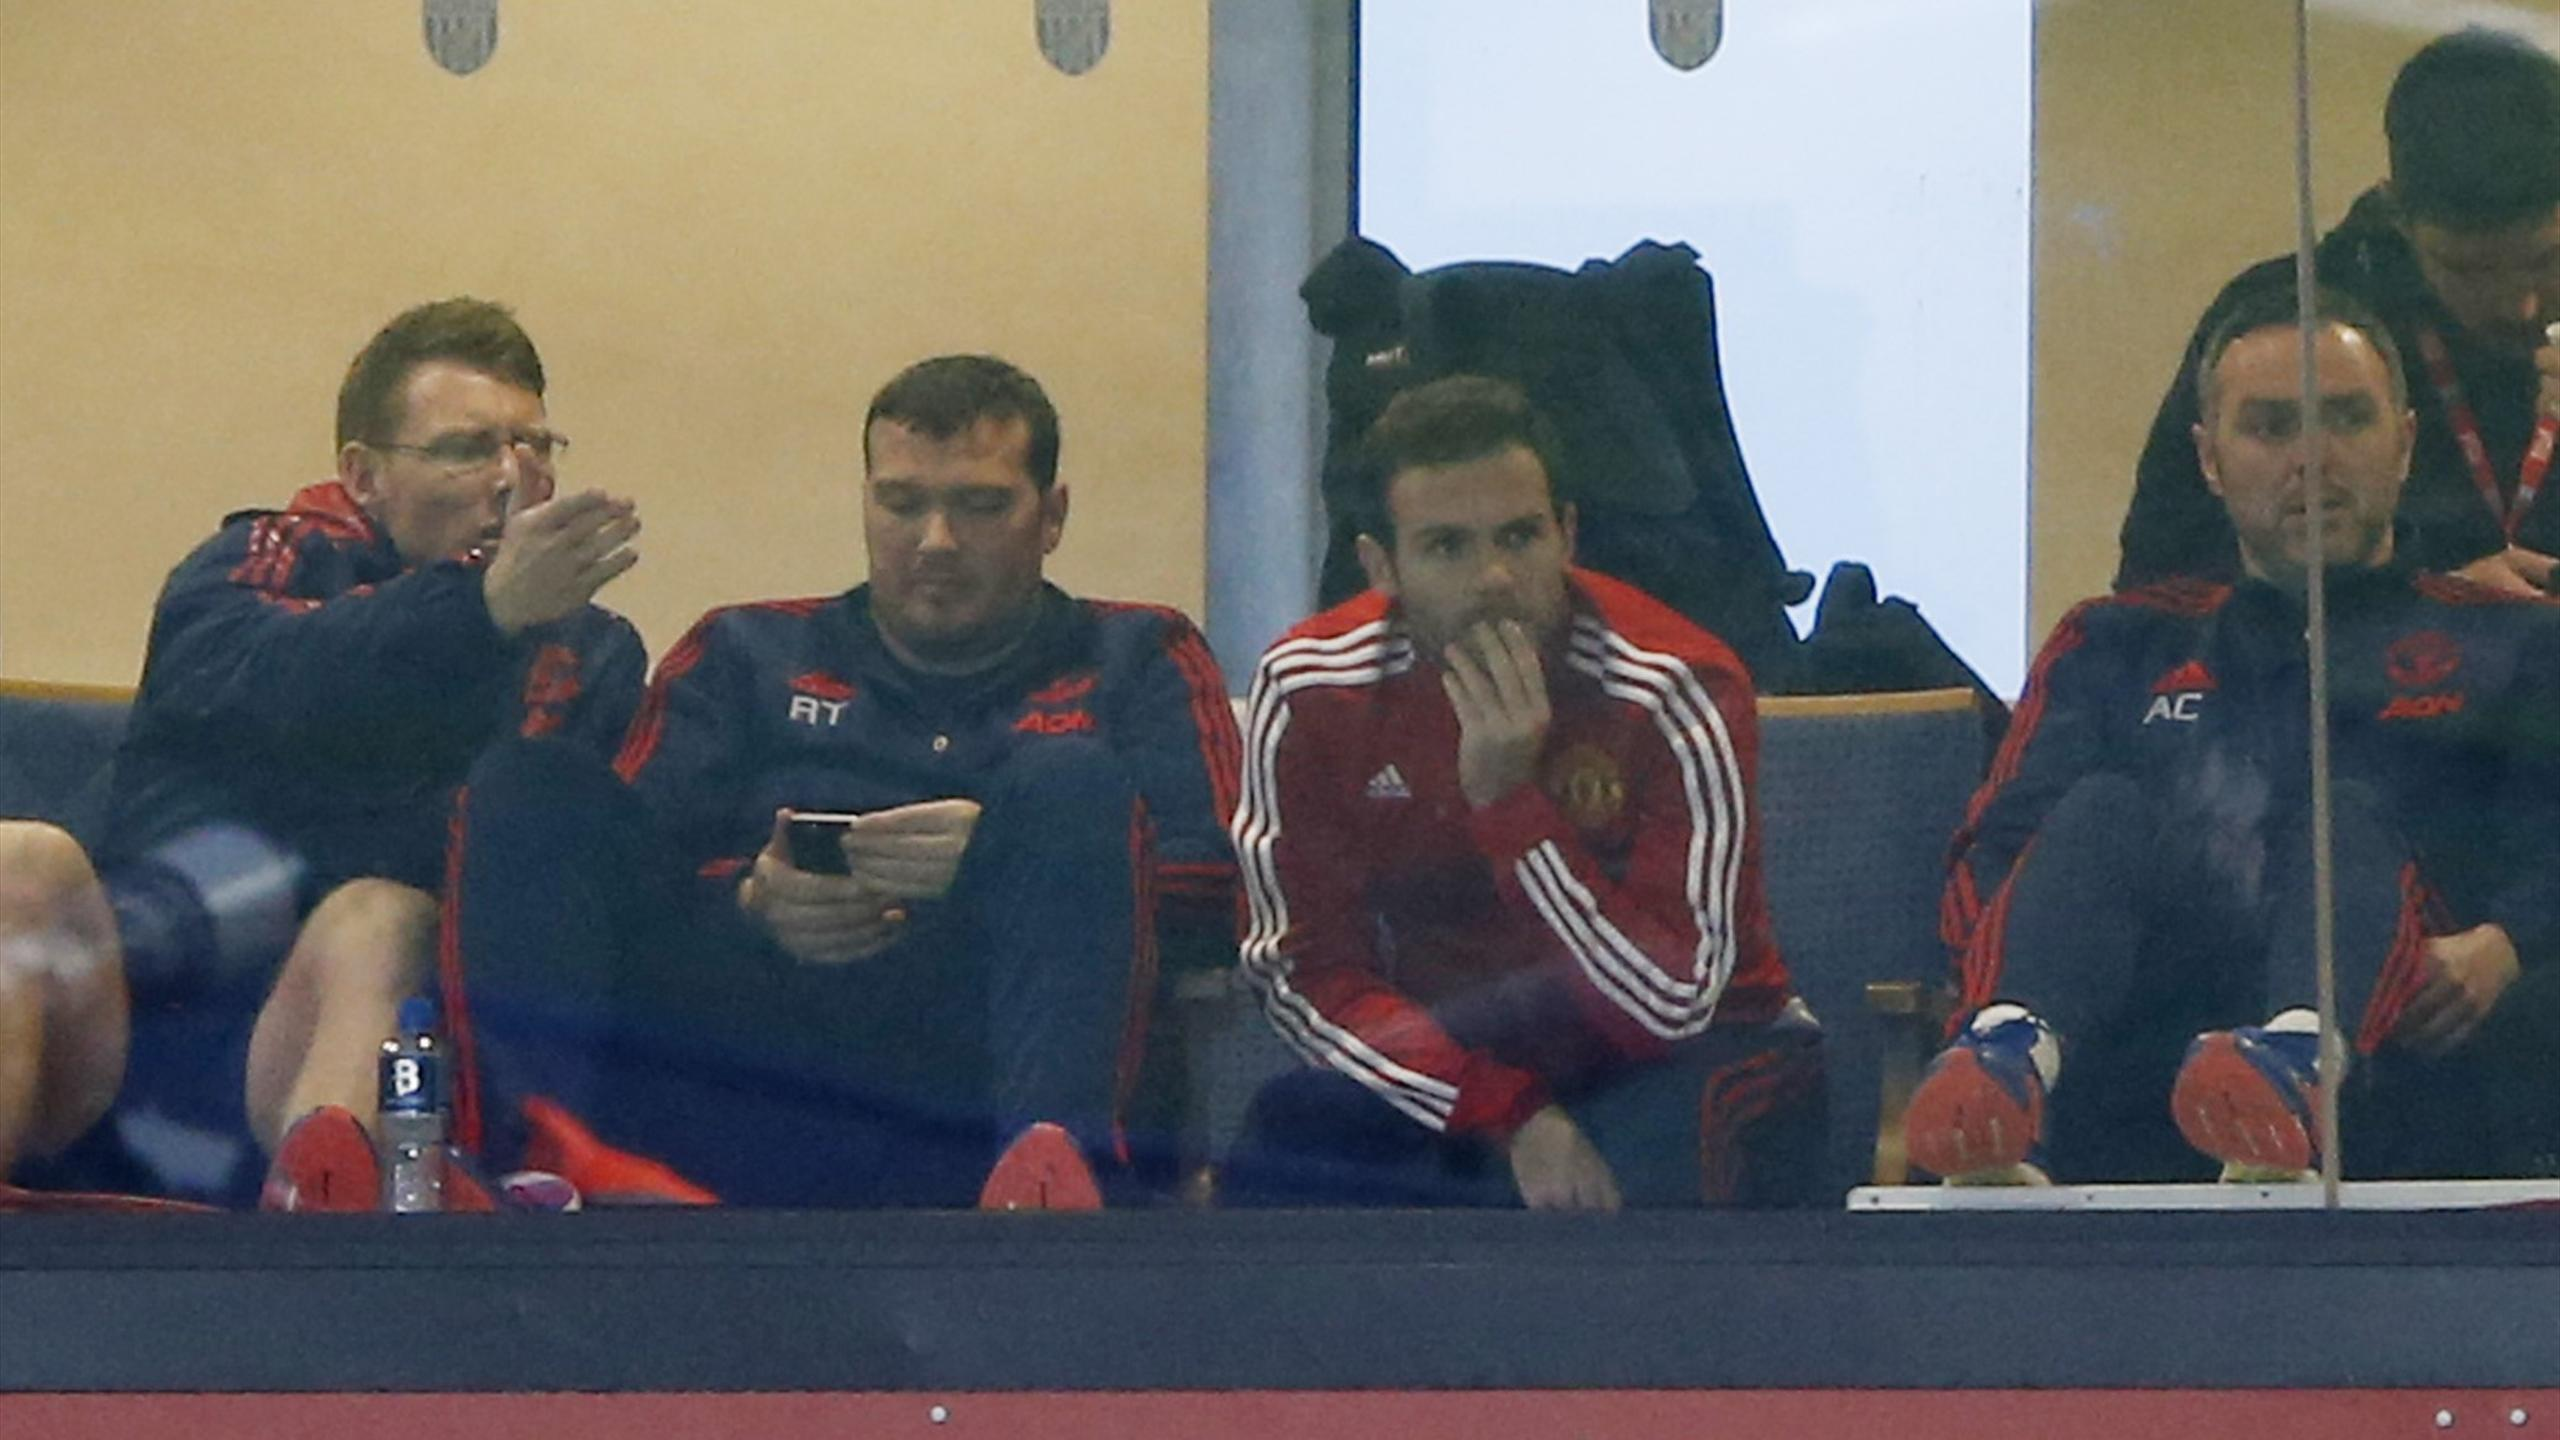 Manchester United midfielder Juan Mata watches from the stands